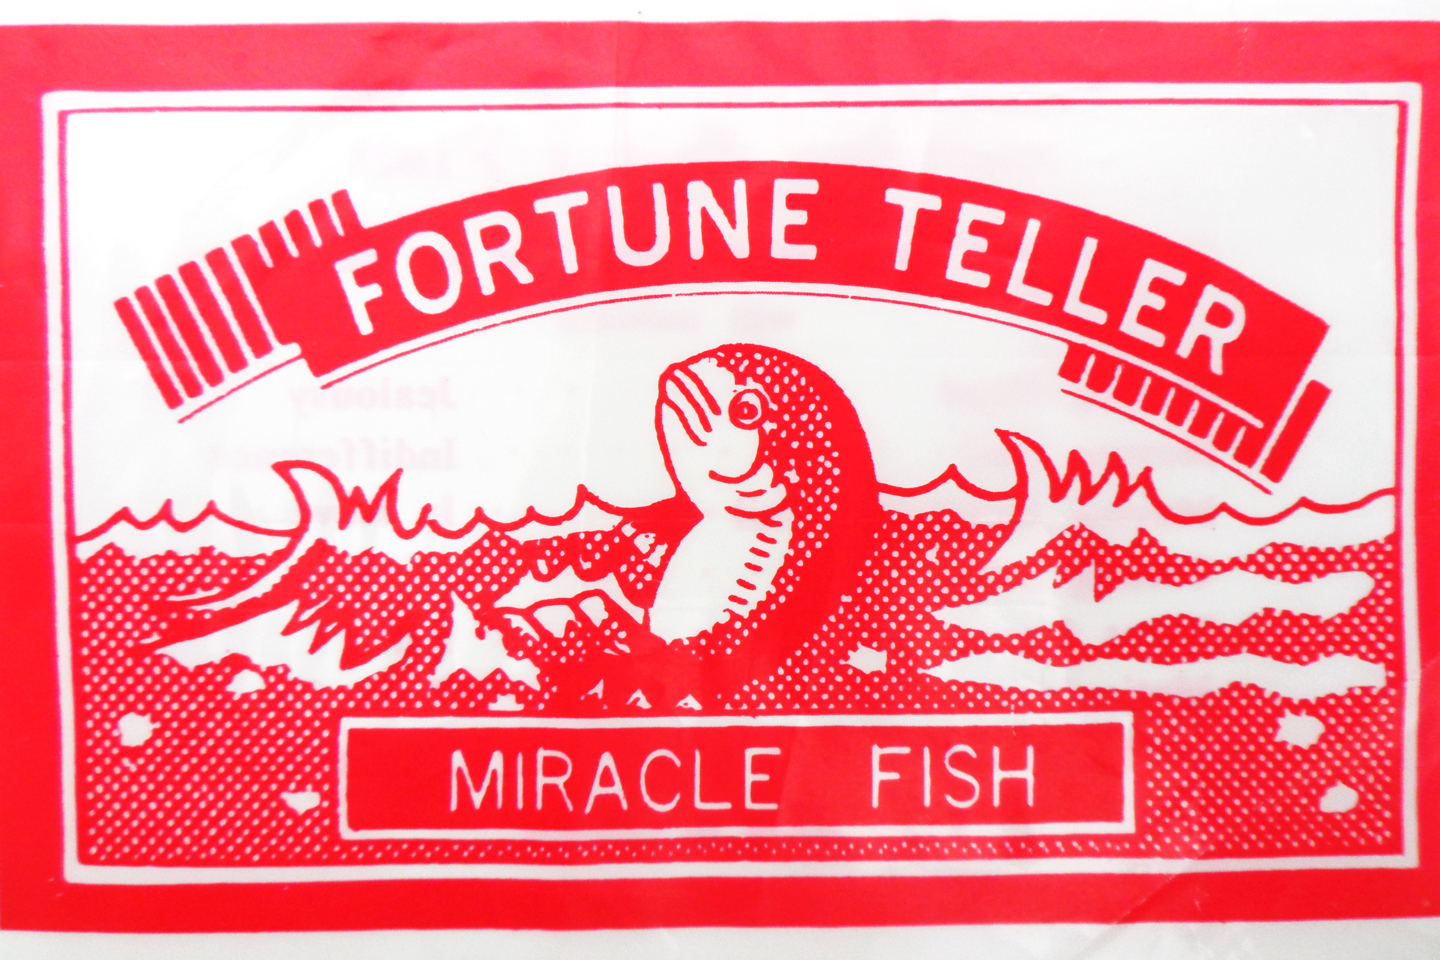 samhain moon meet the fortune telling fish